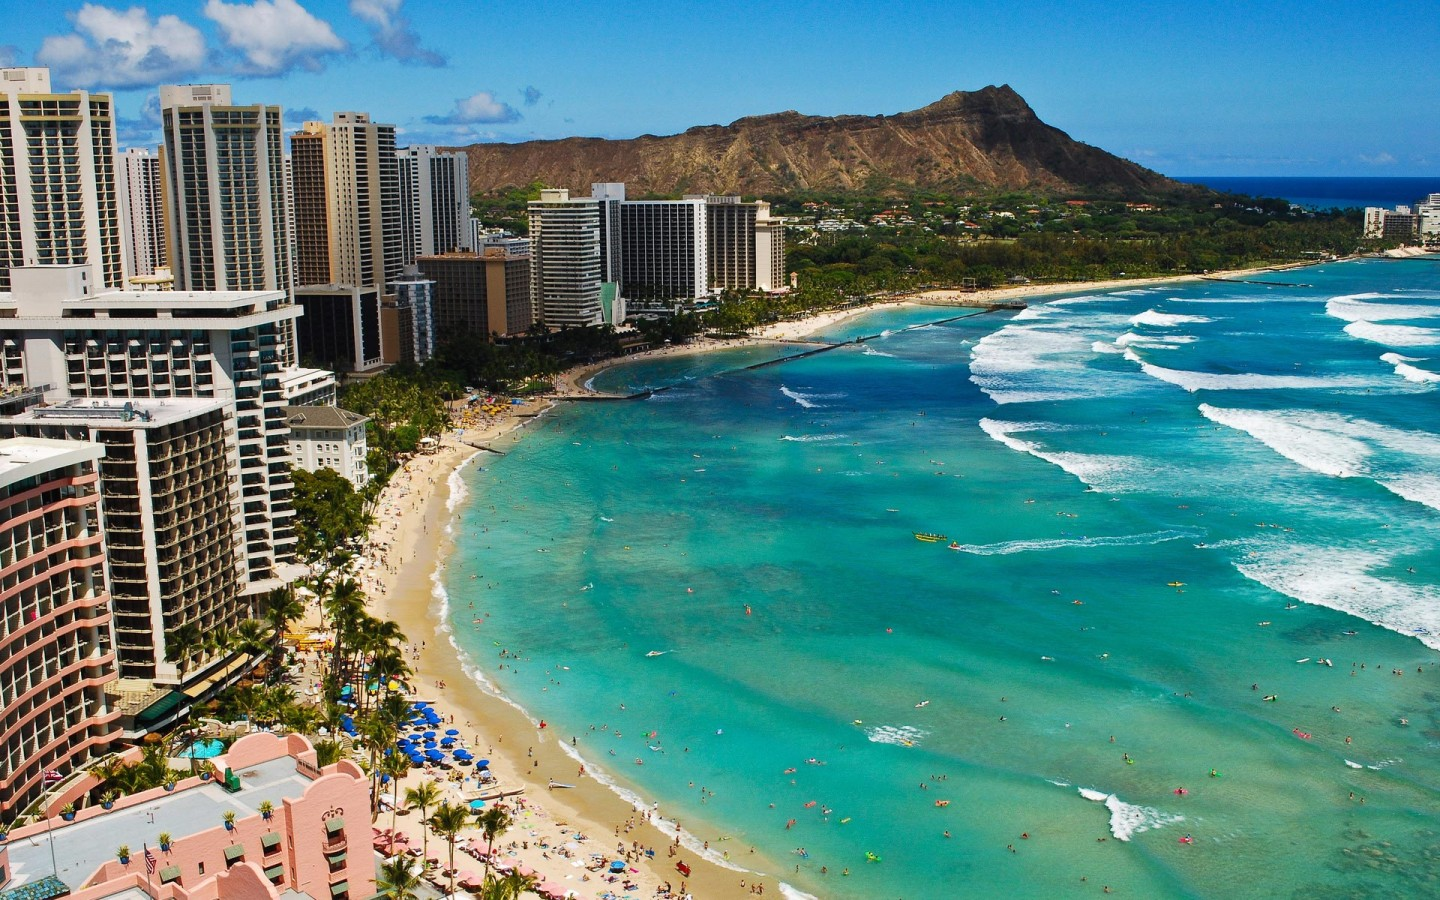 12 Days of Christmas in Hawaii – Holiday Tour Packages Offer